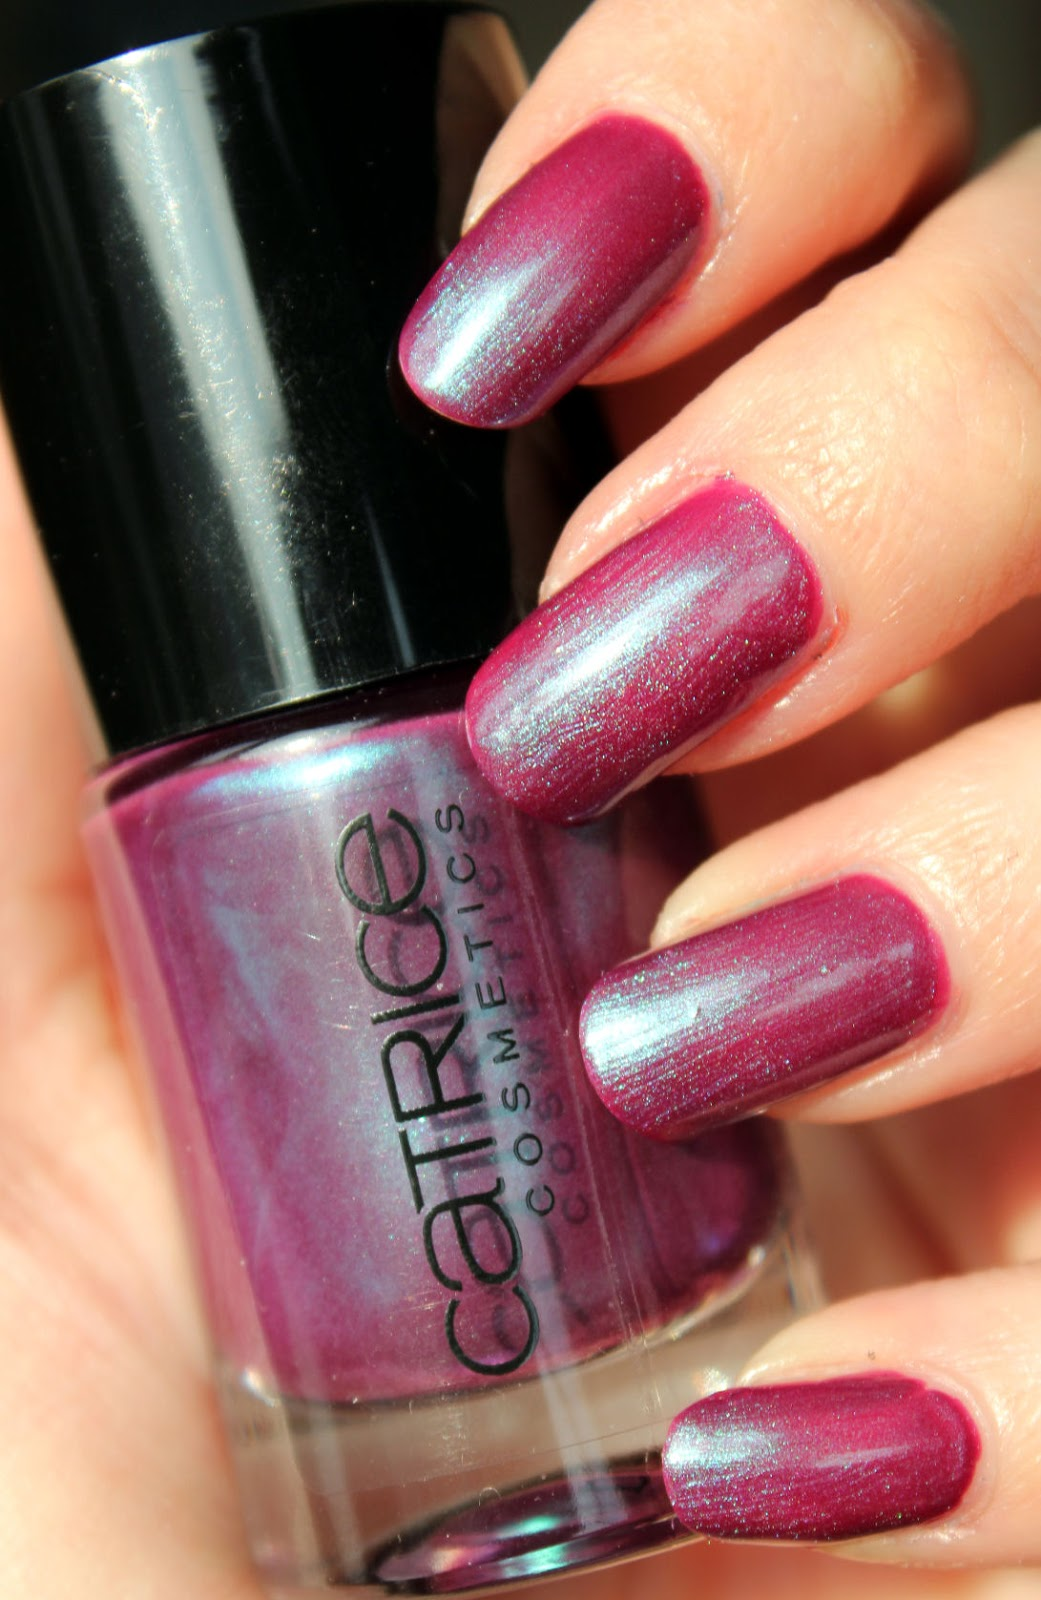 http://lacquediction.blogspot.de/2014/02/catrice-ultimate-nail-lacquer-46-berry.html